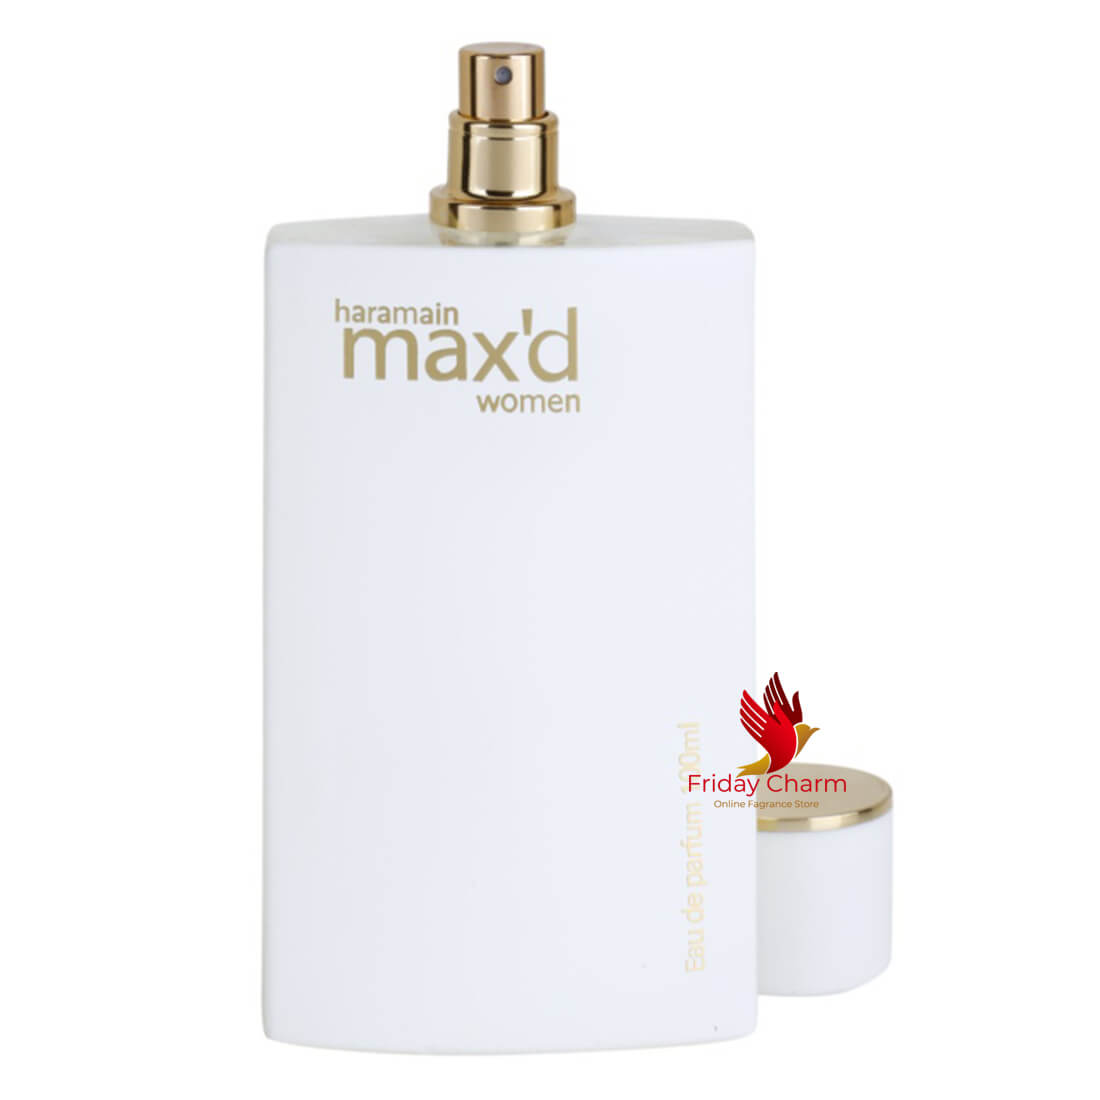 Al Haramain Max'd Perfume Spray - 100ml